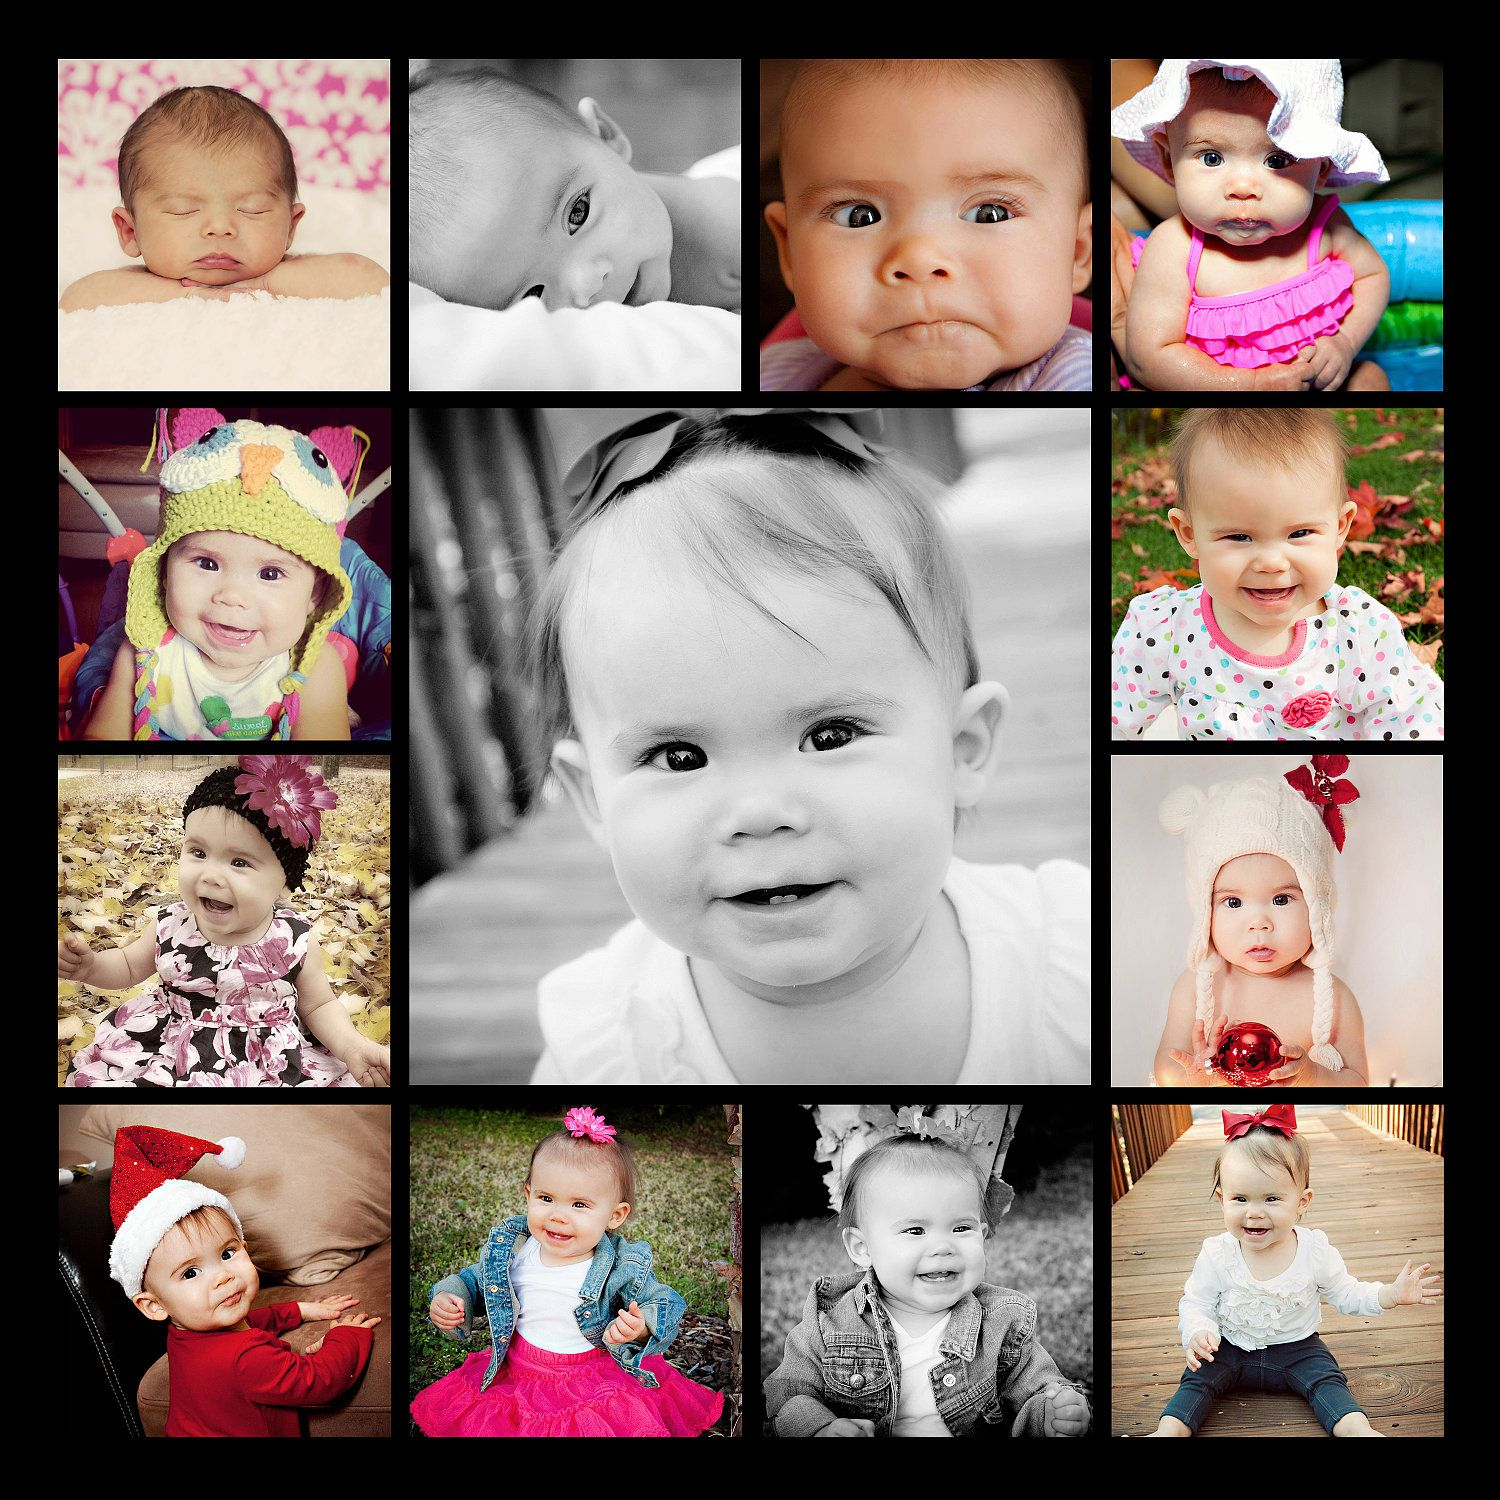 12 month photos for canvas | Amber Marie Photography | Pinterest ...